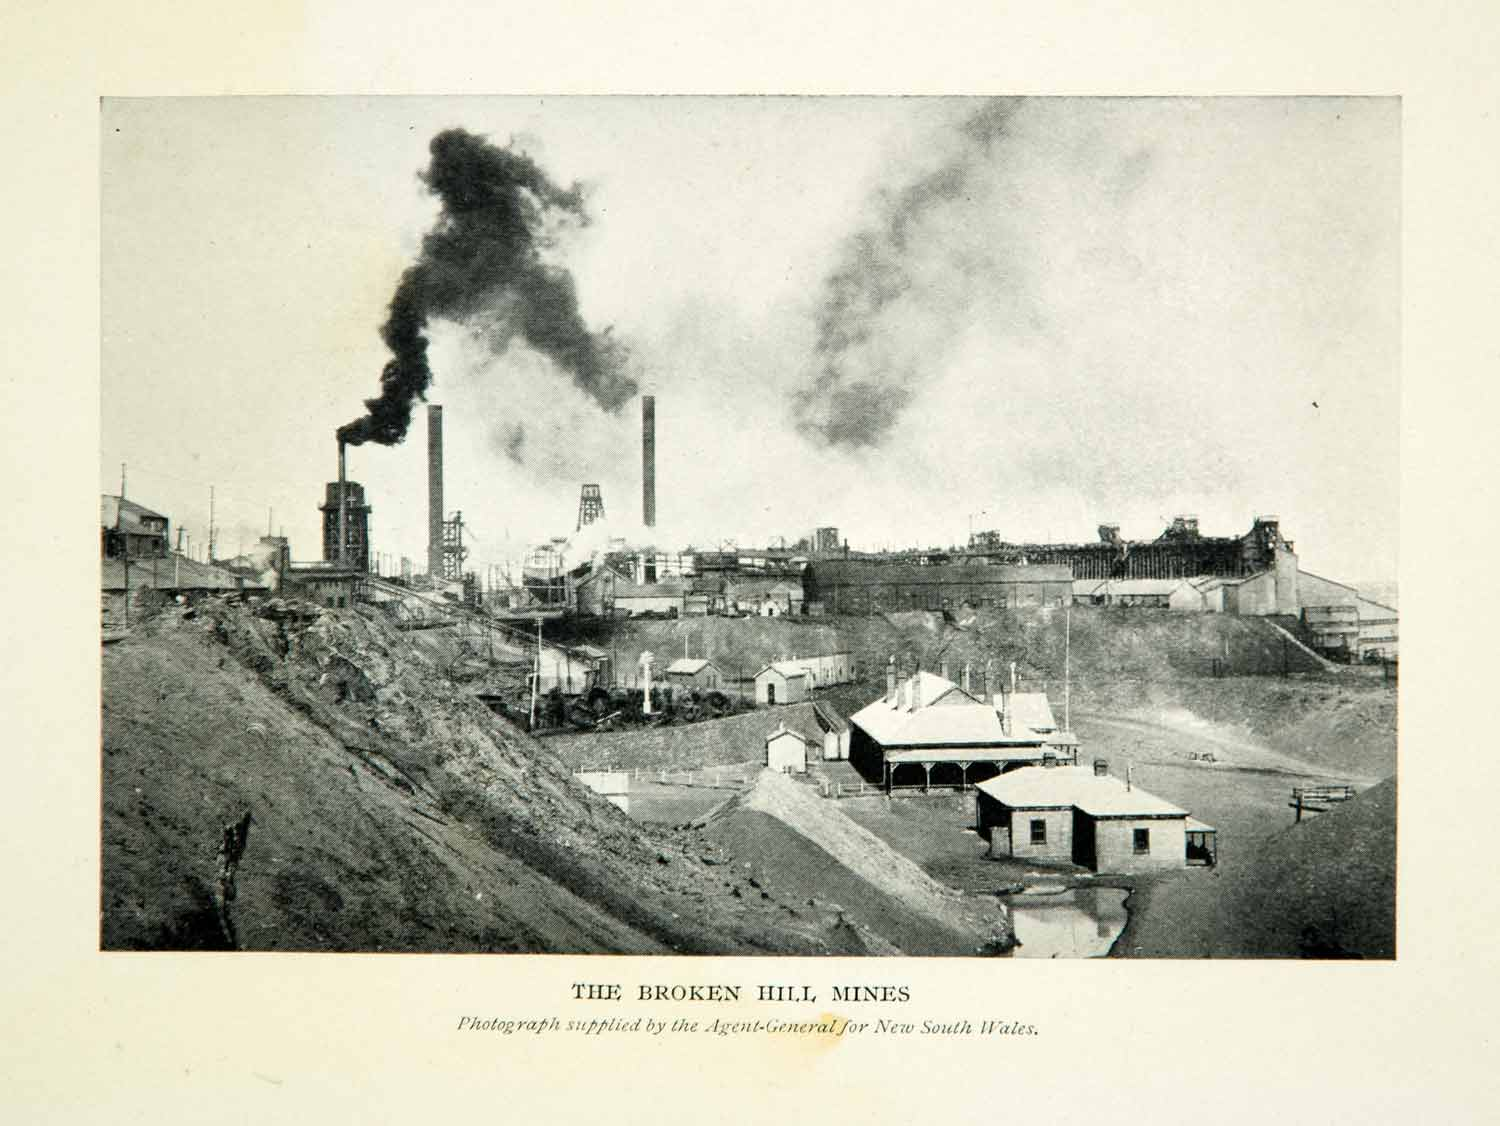 1910 Print Broken Hill Mines New South Wales Smokestack Outback Australia XGHD8